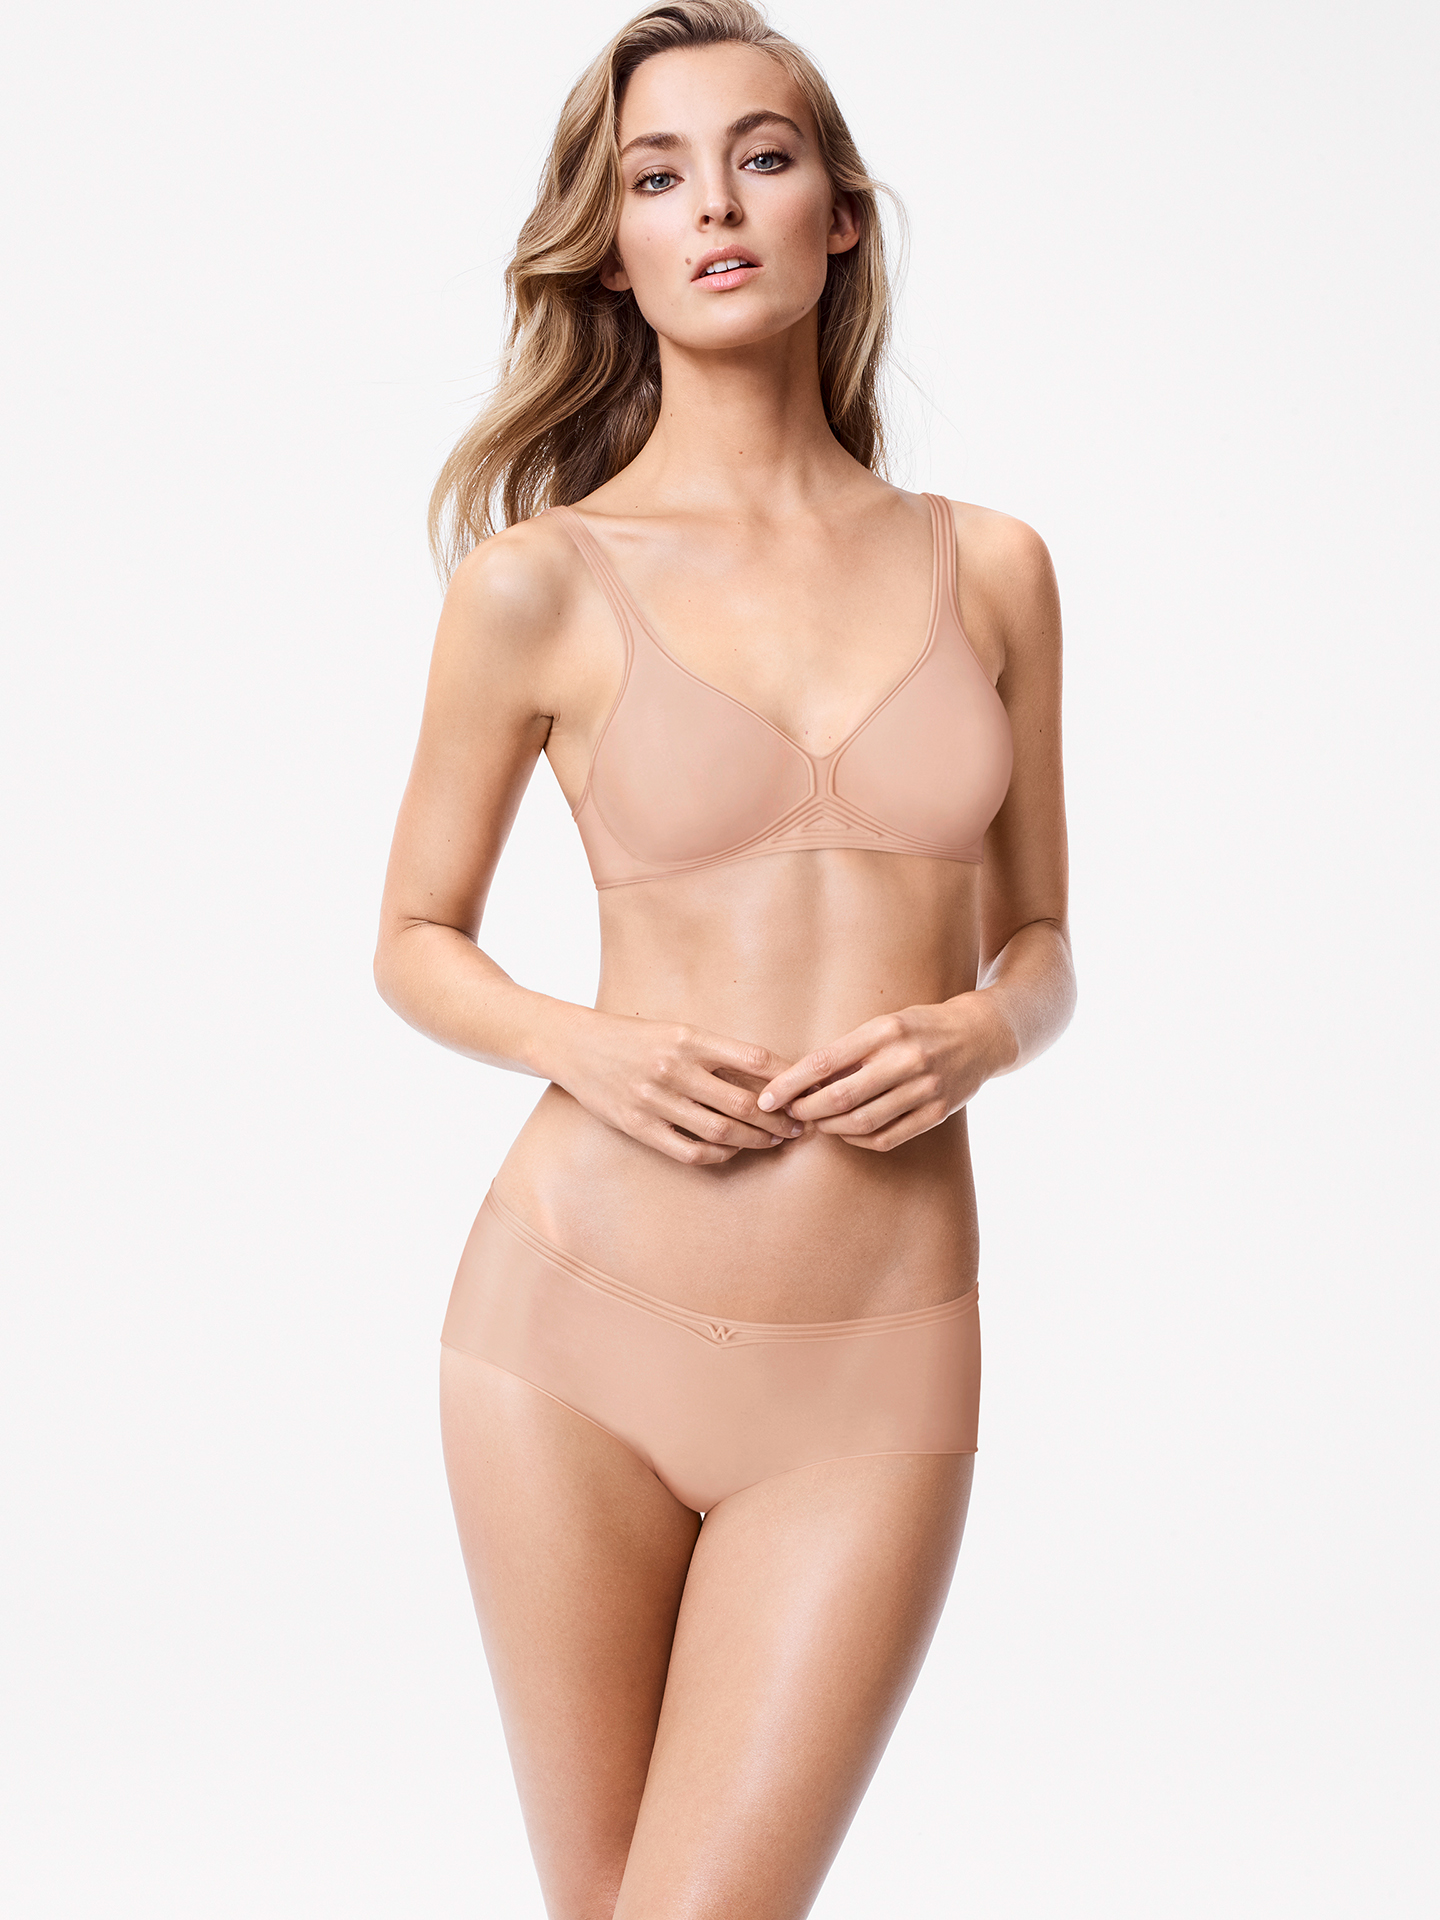 Innovative comfort: The modern, clean look makes this panty, made from pleasantly soft Cotton Contour material, really stand out. The bonded side seams and flocked silicone strips, which take on the function of stretchy elastic, ensure ultimate comfort.